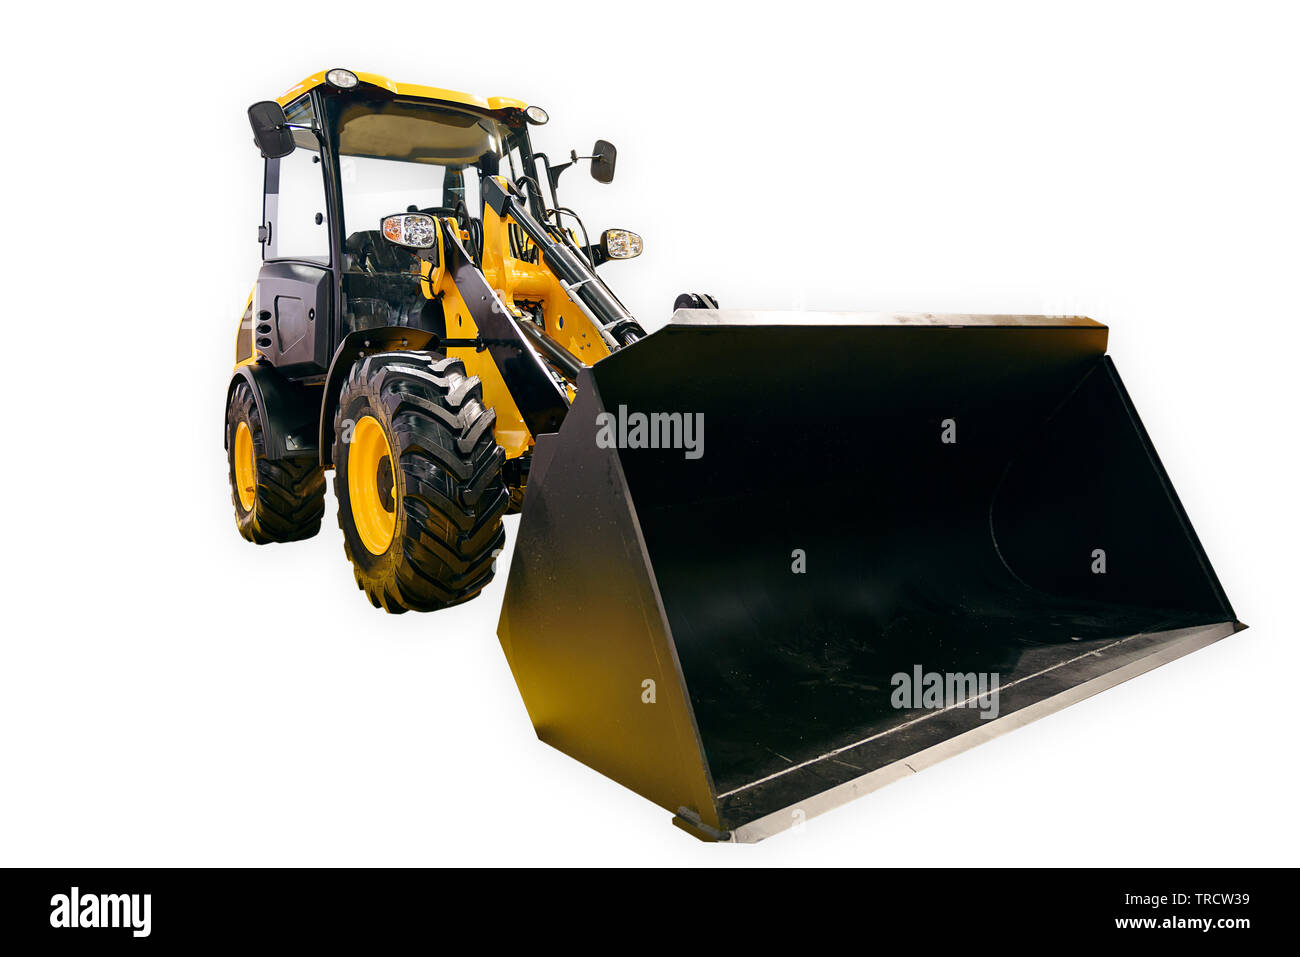 New generic yellow loader excavator isolated on a white background - Stock Image